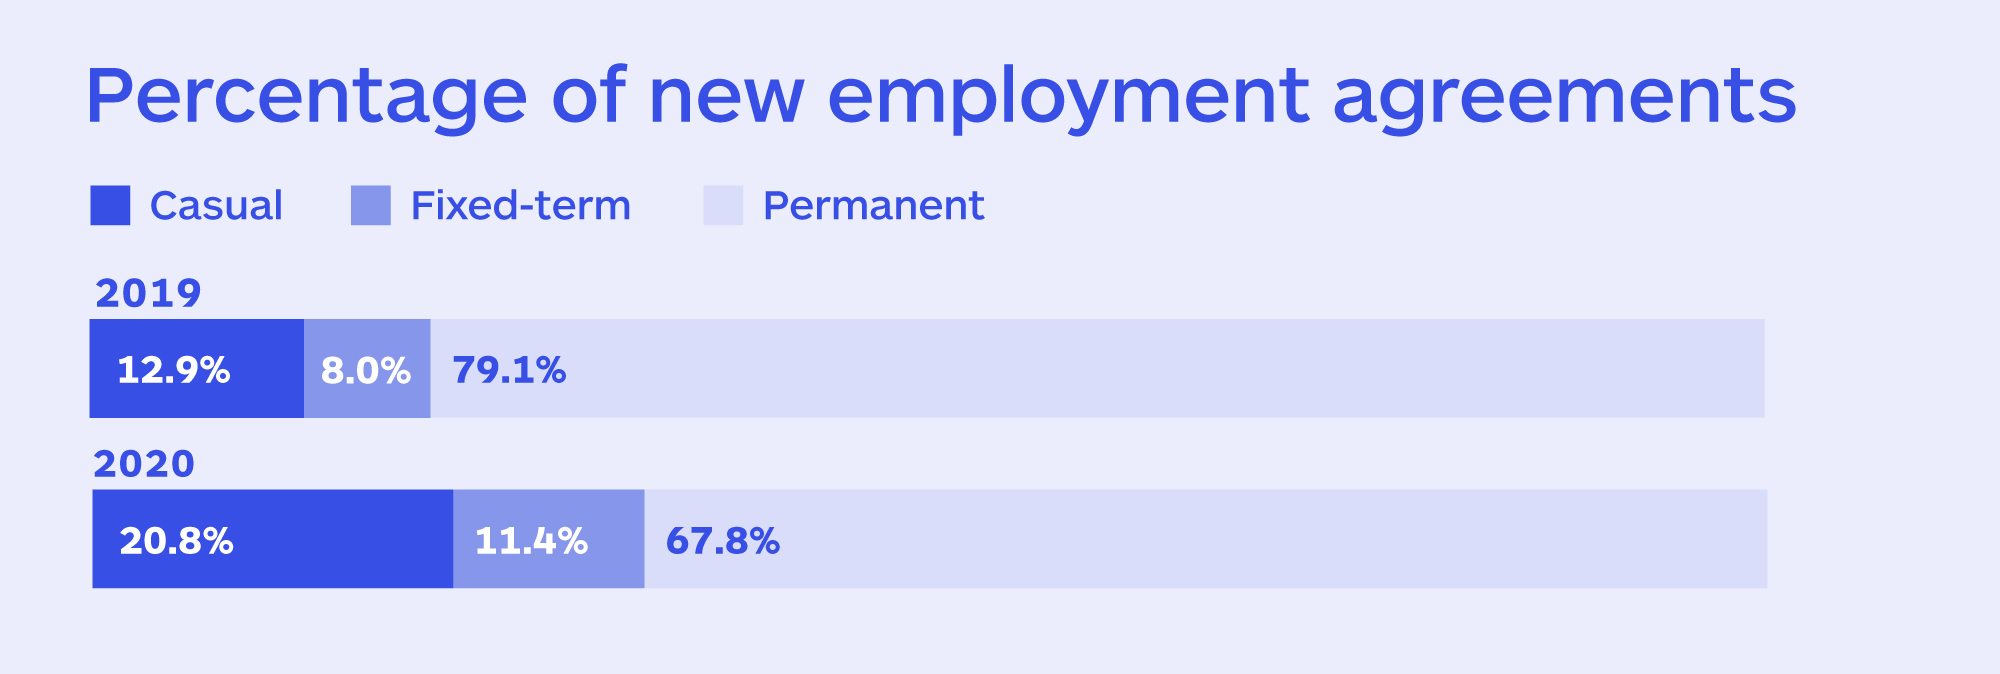 Percentage of new employment